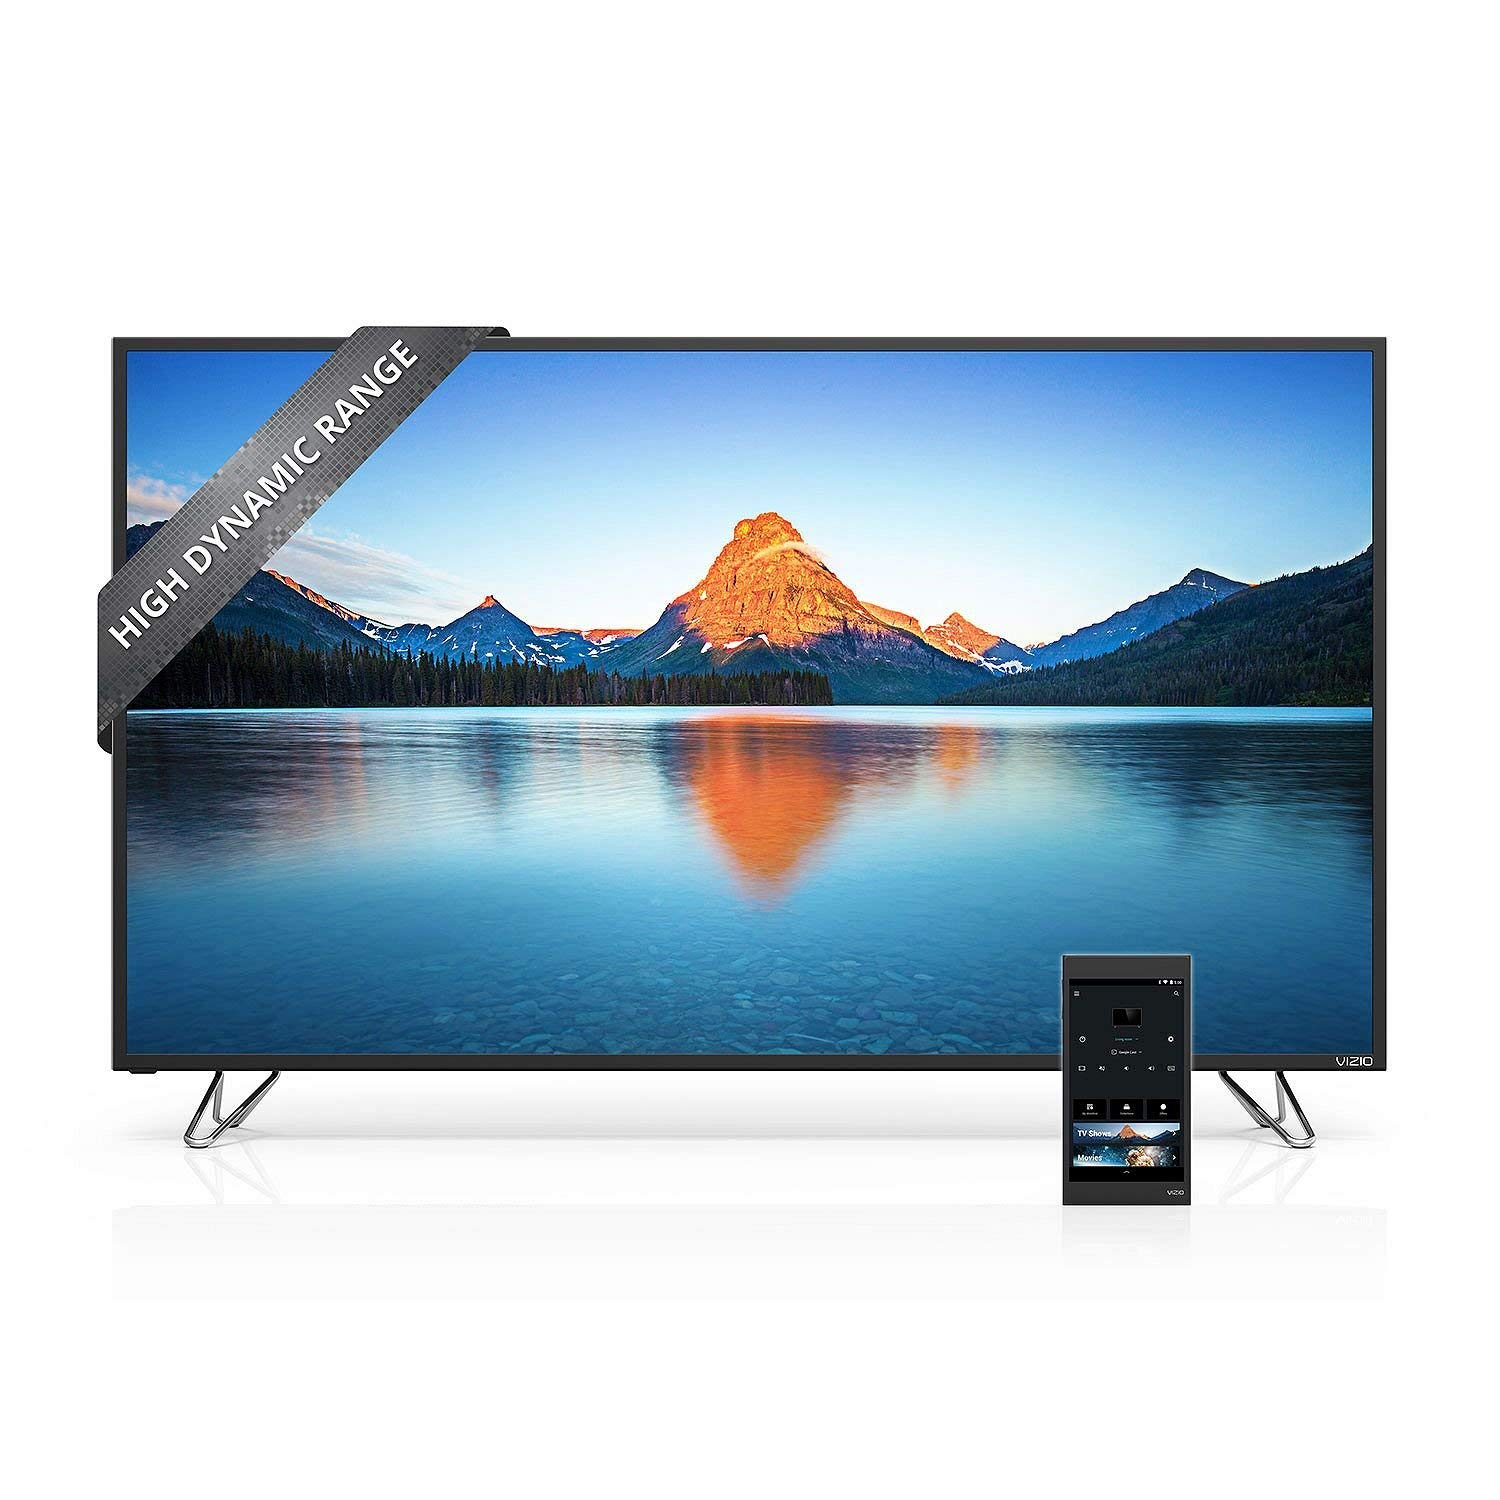 An image related to VIZIO M Series M55-D0 55-Inch HDR 4K LCD 120Hz TV with VIZIO Clear Action 360